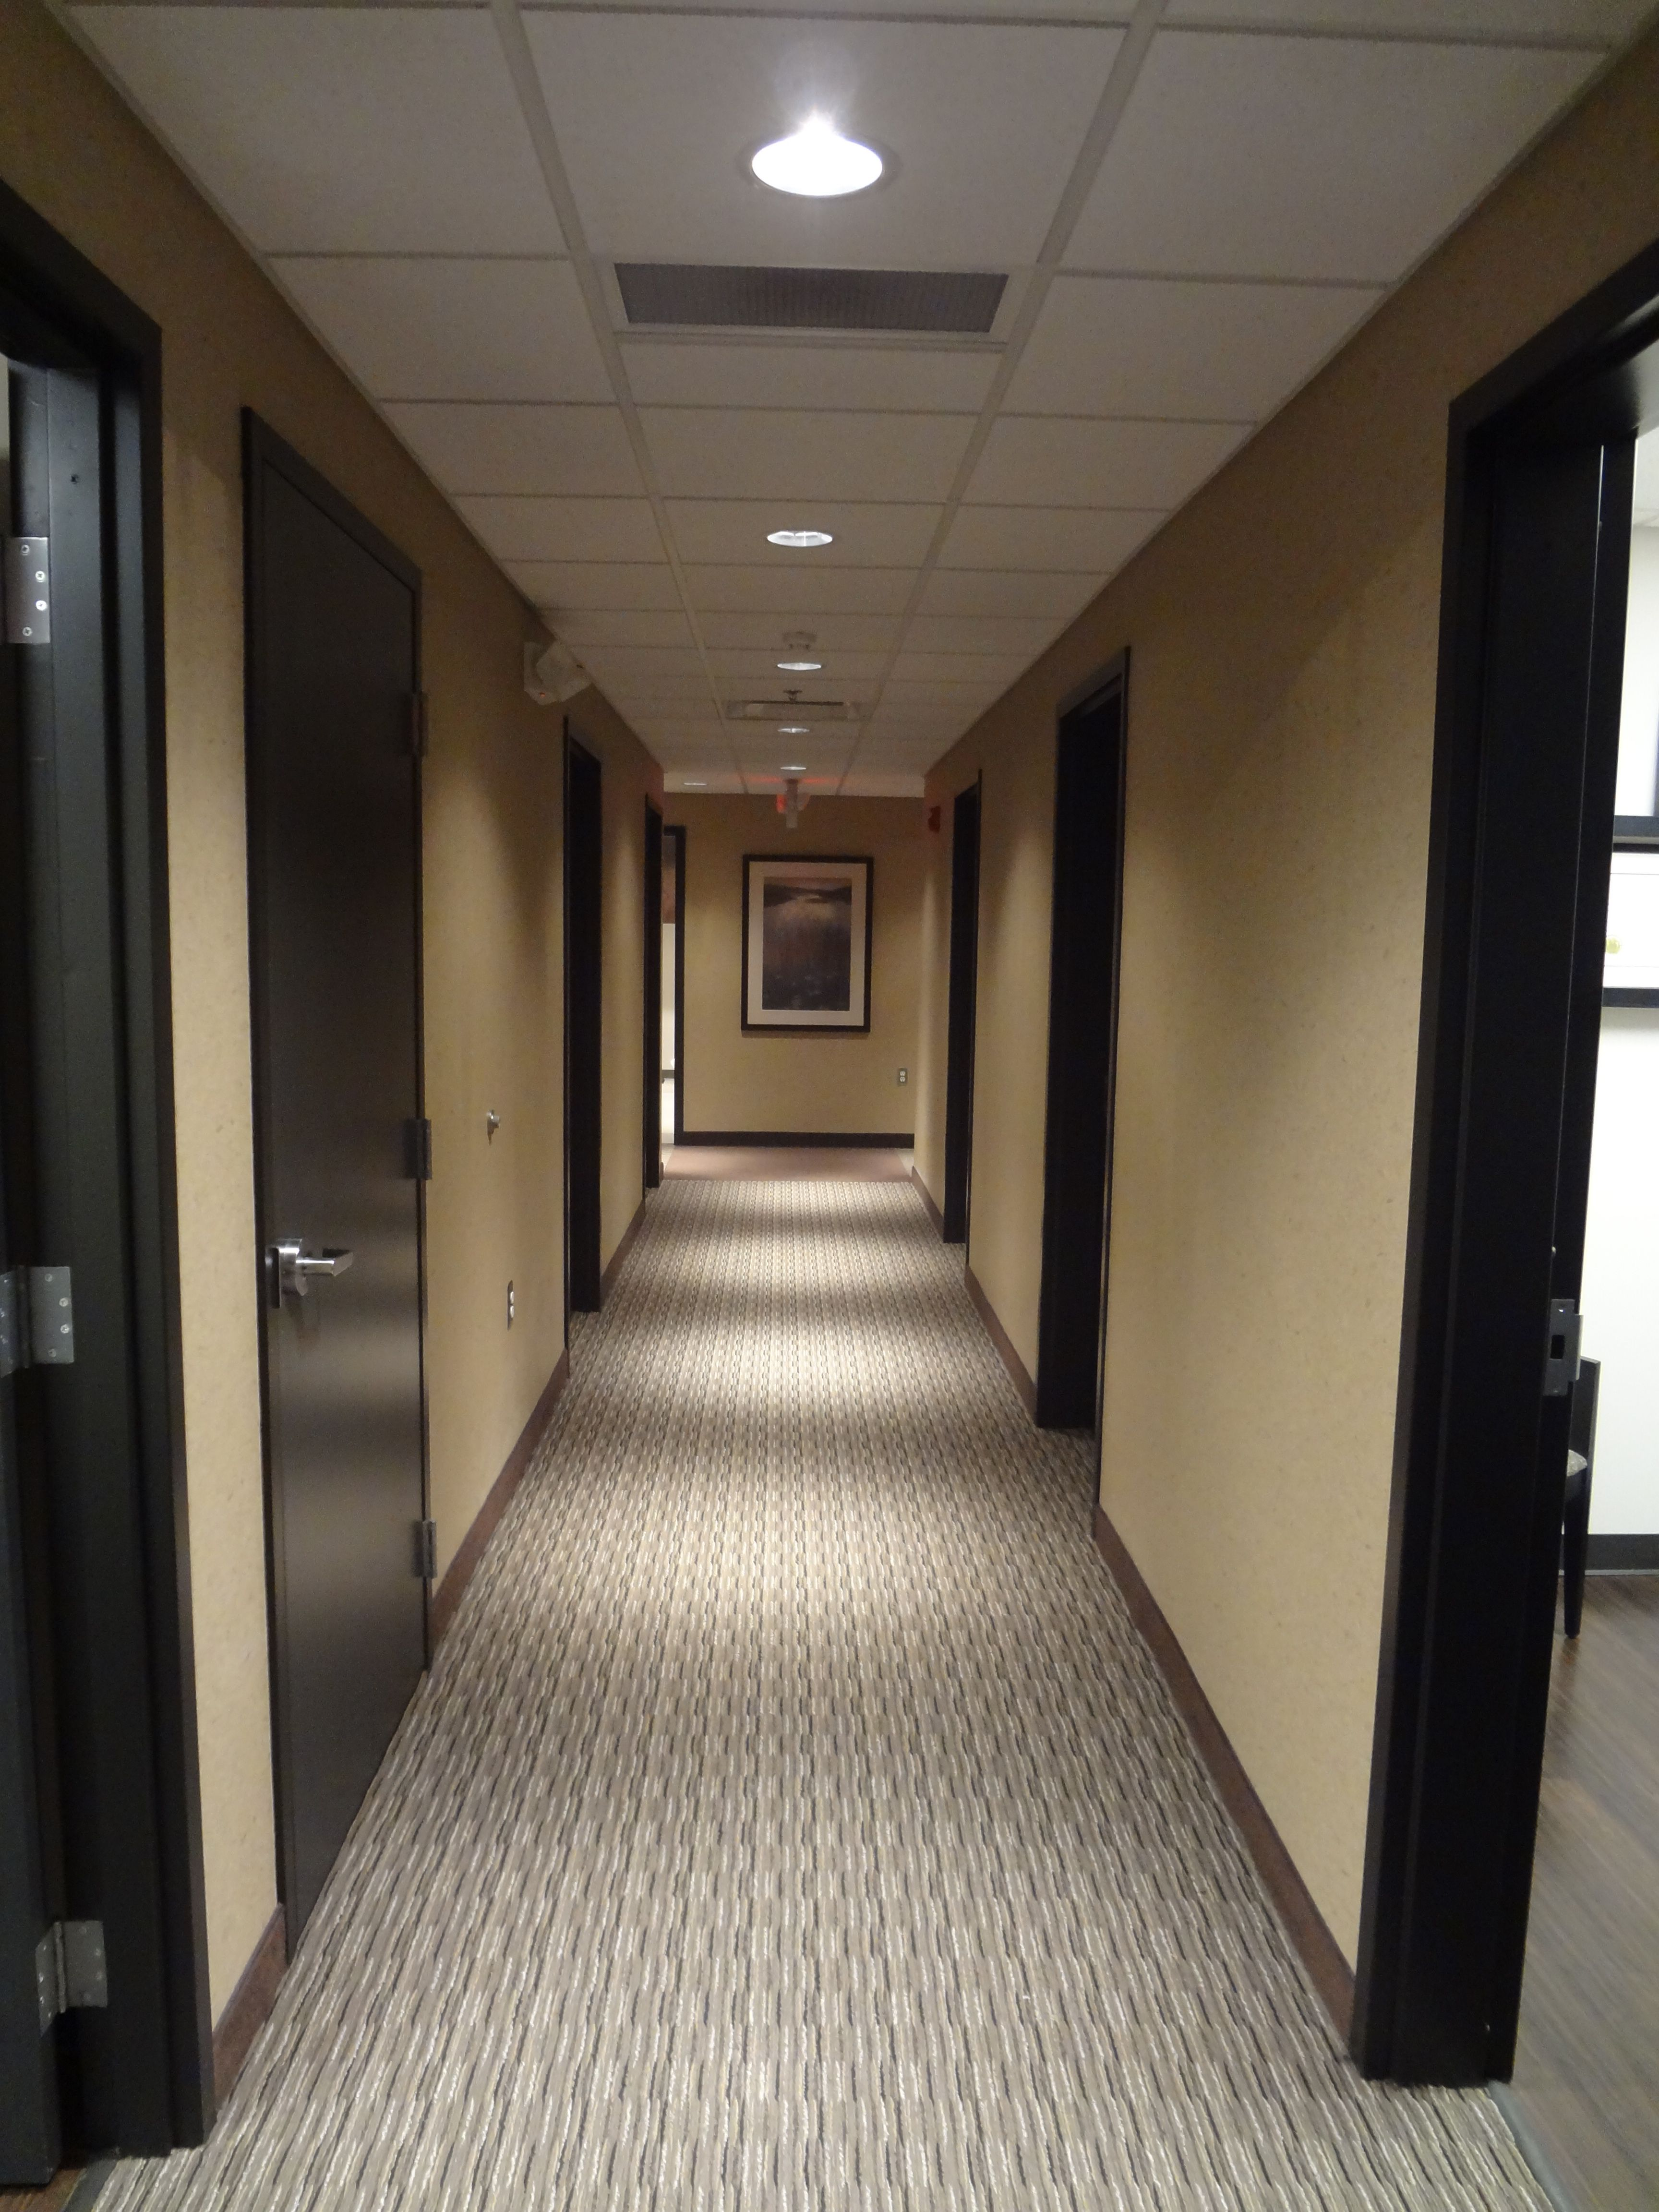 Hallway Of Medical Office With Carpet Custom Stained Oak Doors And Recessed Can Lighting